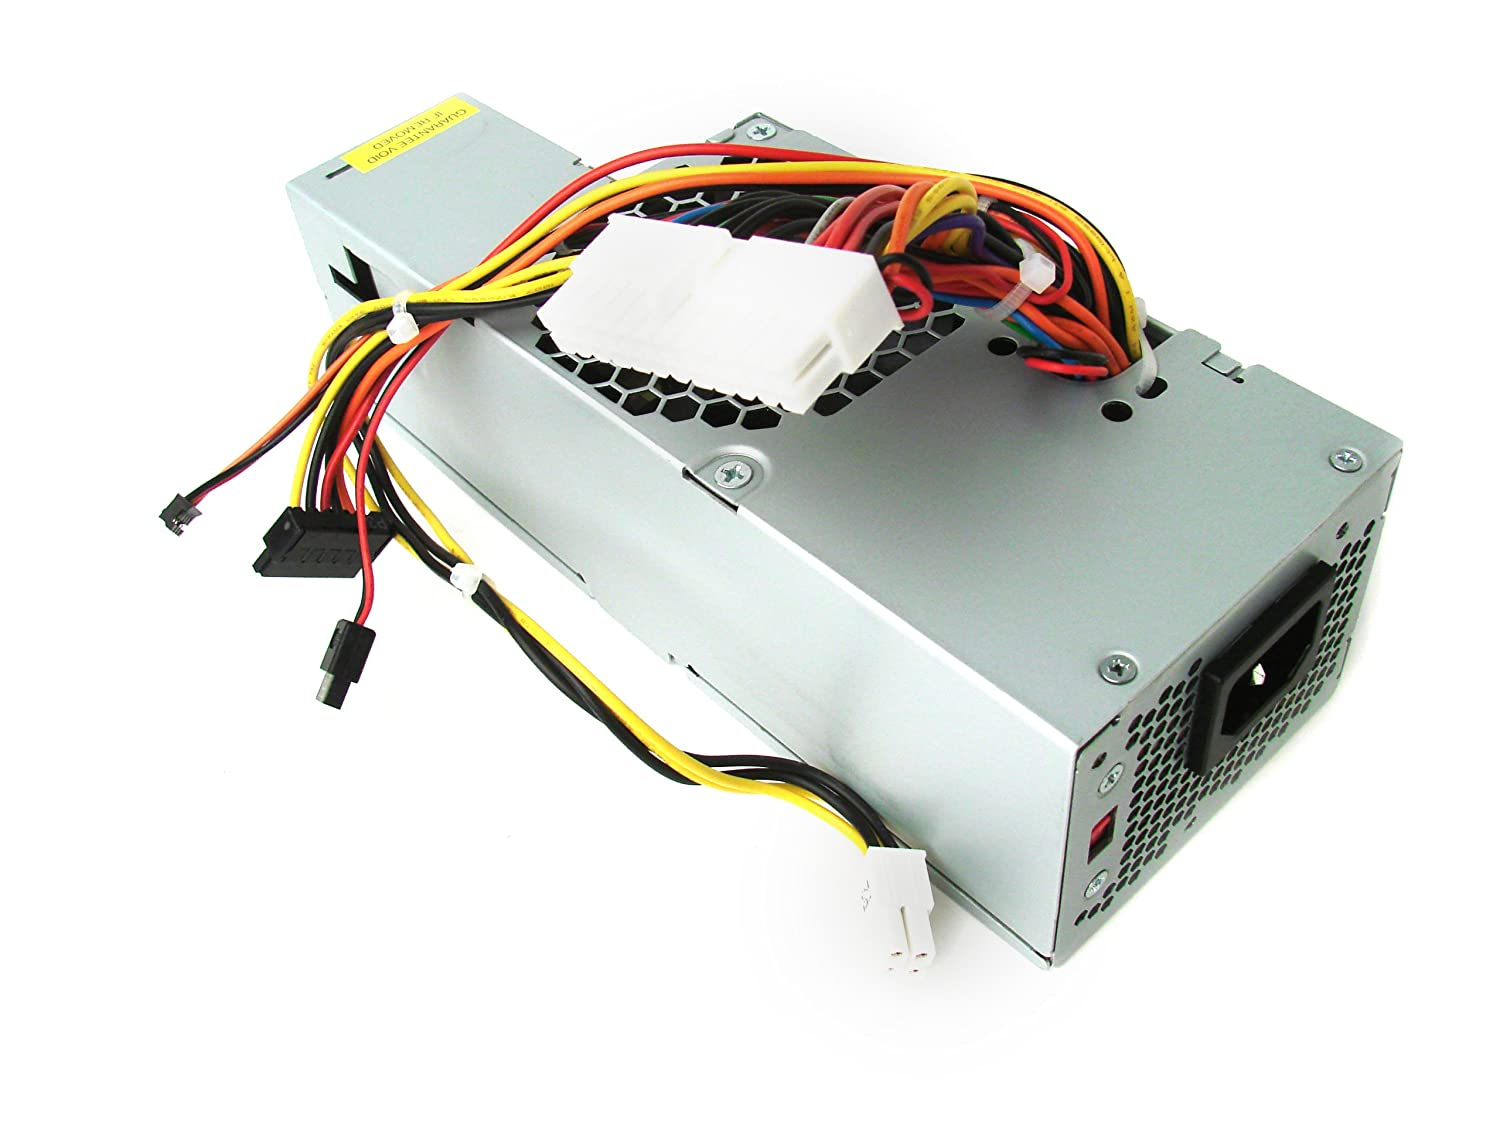 Genuine Dell 275w Power Supply For the Optiplex 740, 745, 755, Dimension 9200c, and XPS 210 Small Form Factor Systems SFF Dell part numbers: RM117, PW124, FR619, WU142 Model numbers: HP-L2767FPI LF, DPS-275CB-1A, HP-U2757F331 LF, PS-5271-3DF1-LE, H275P-0 for delta electronics dps 320eb server power supply 320w psu for hp b2600 dps 320eb c 0950 4051 100 127v 9 0a 200 240v 4 5a